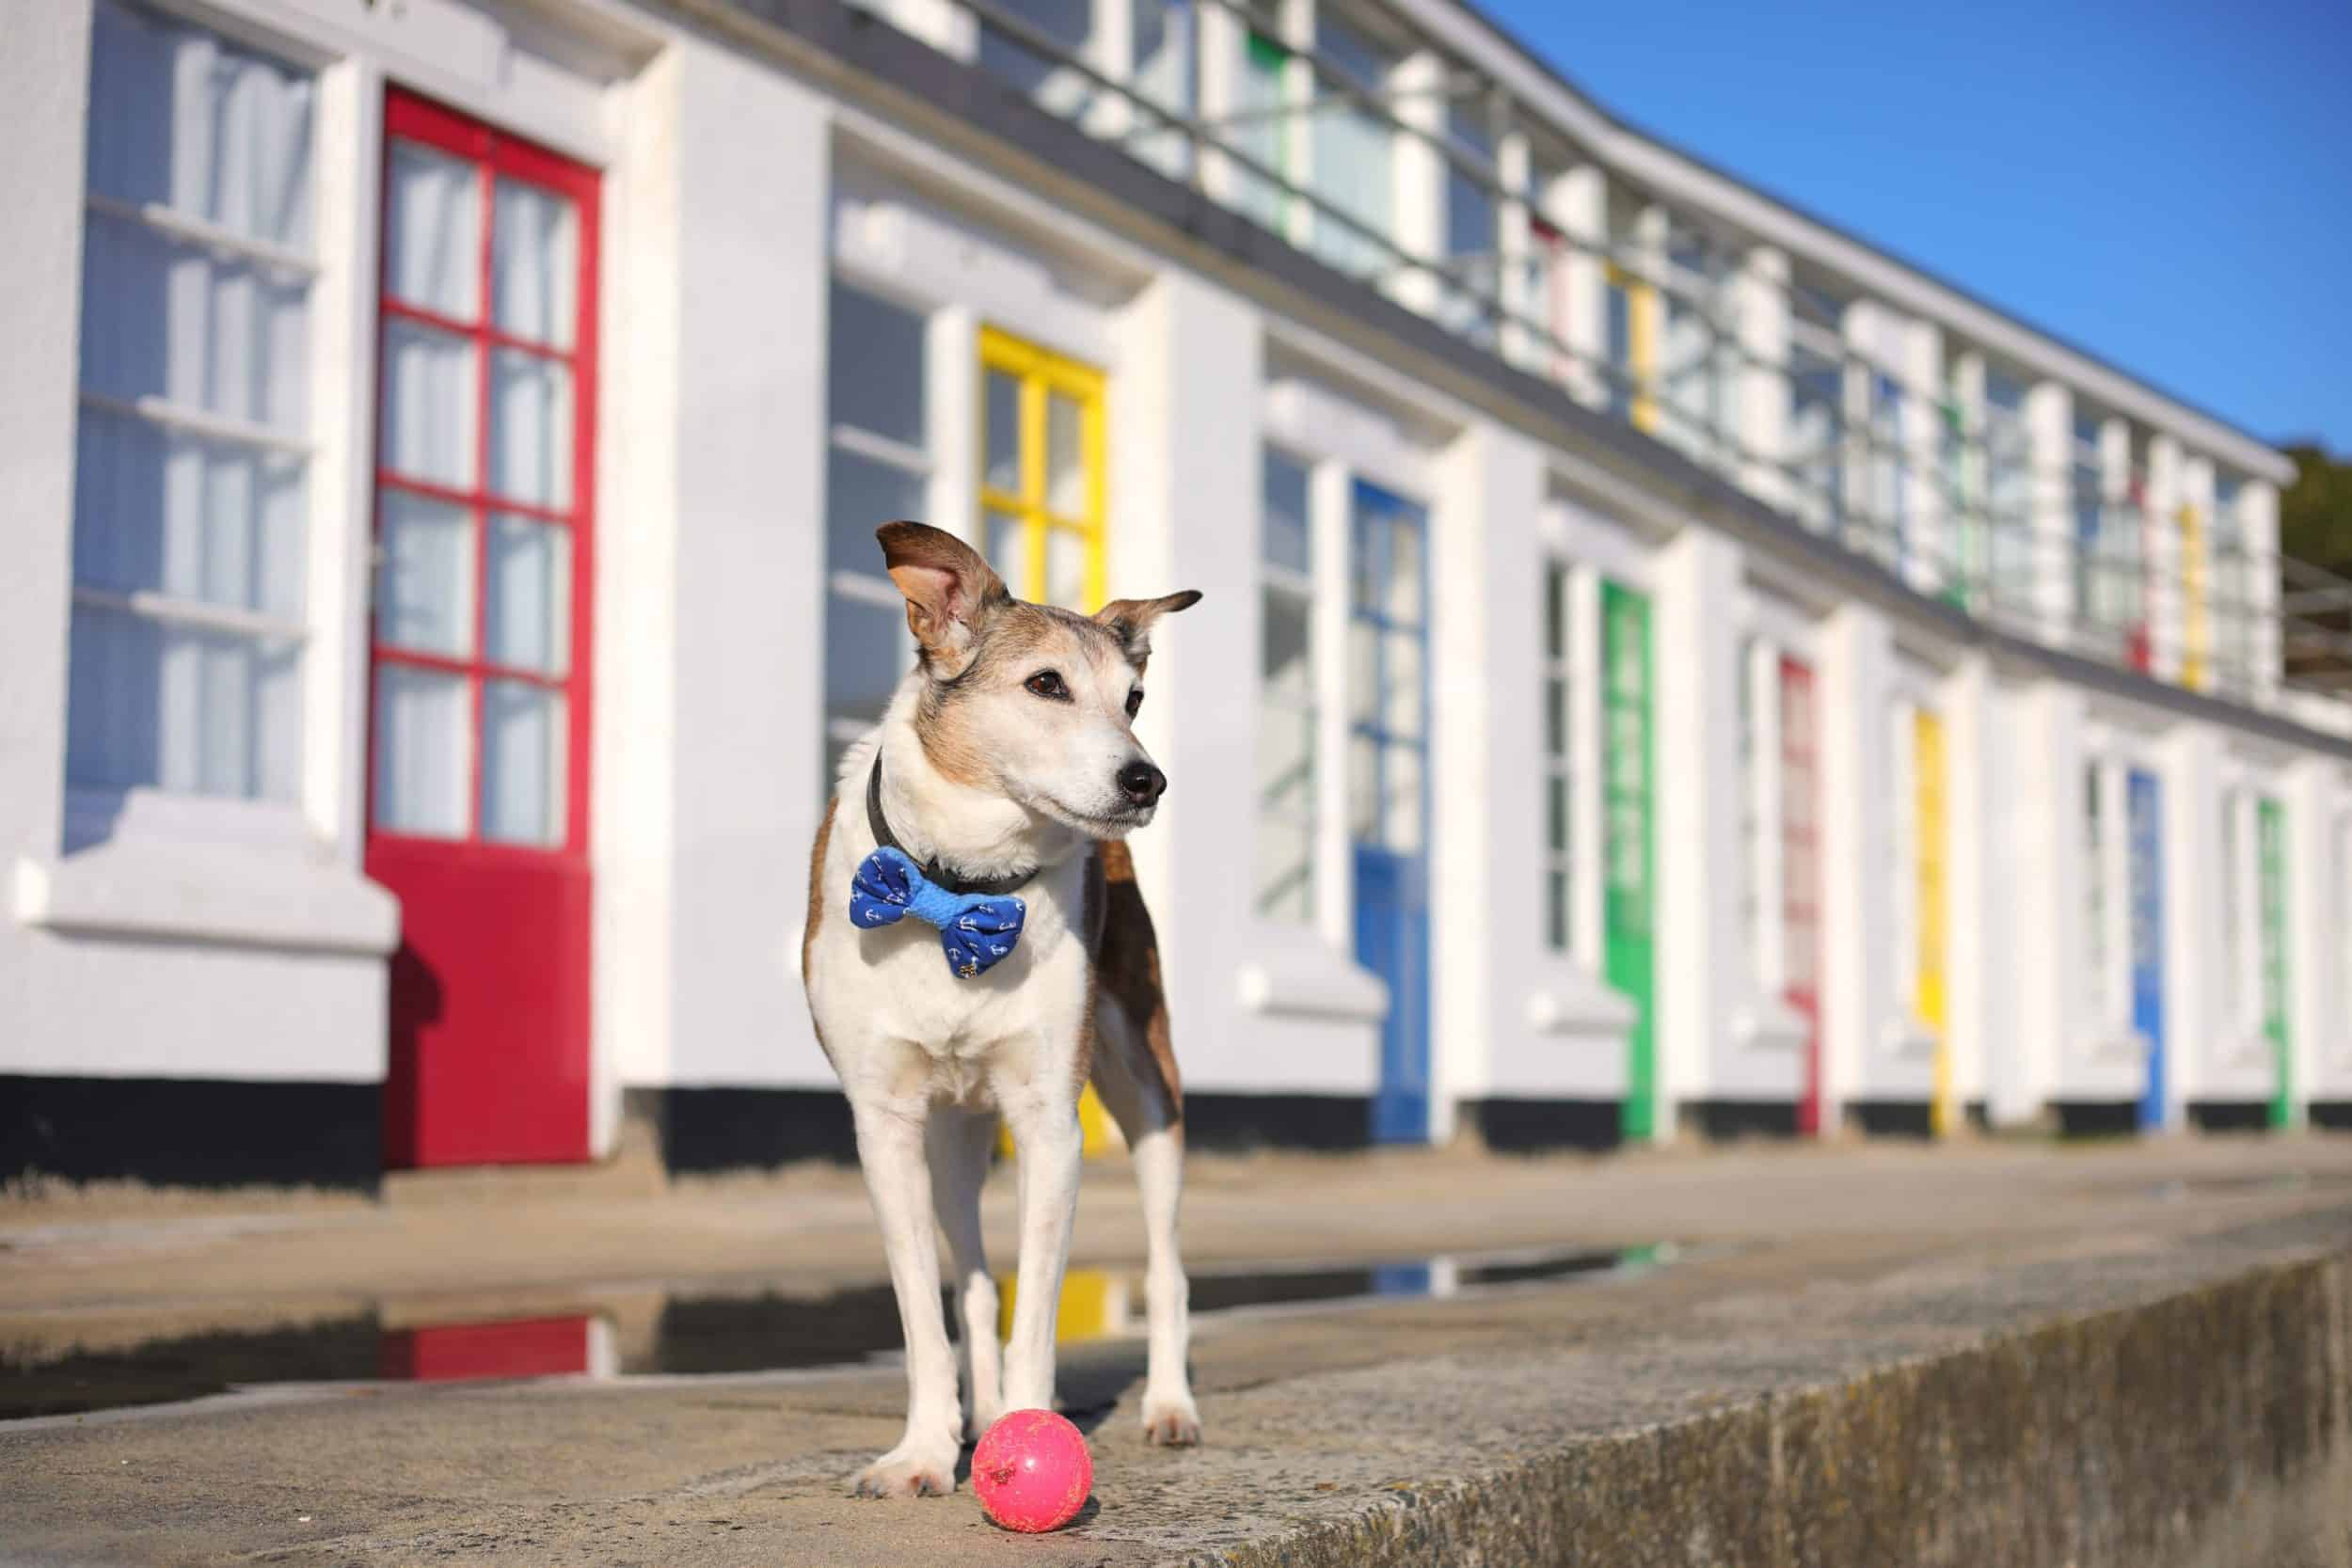 Poppy Dog by the Beach Huts at Porthwidden Beach